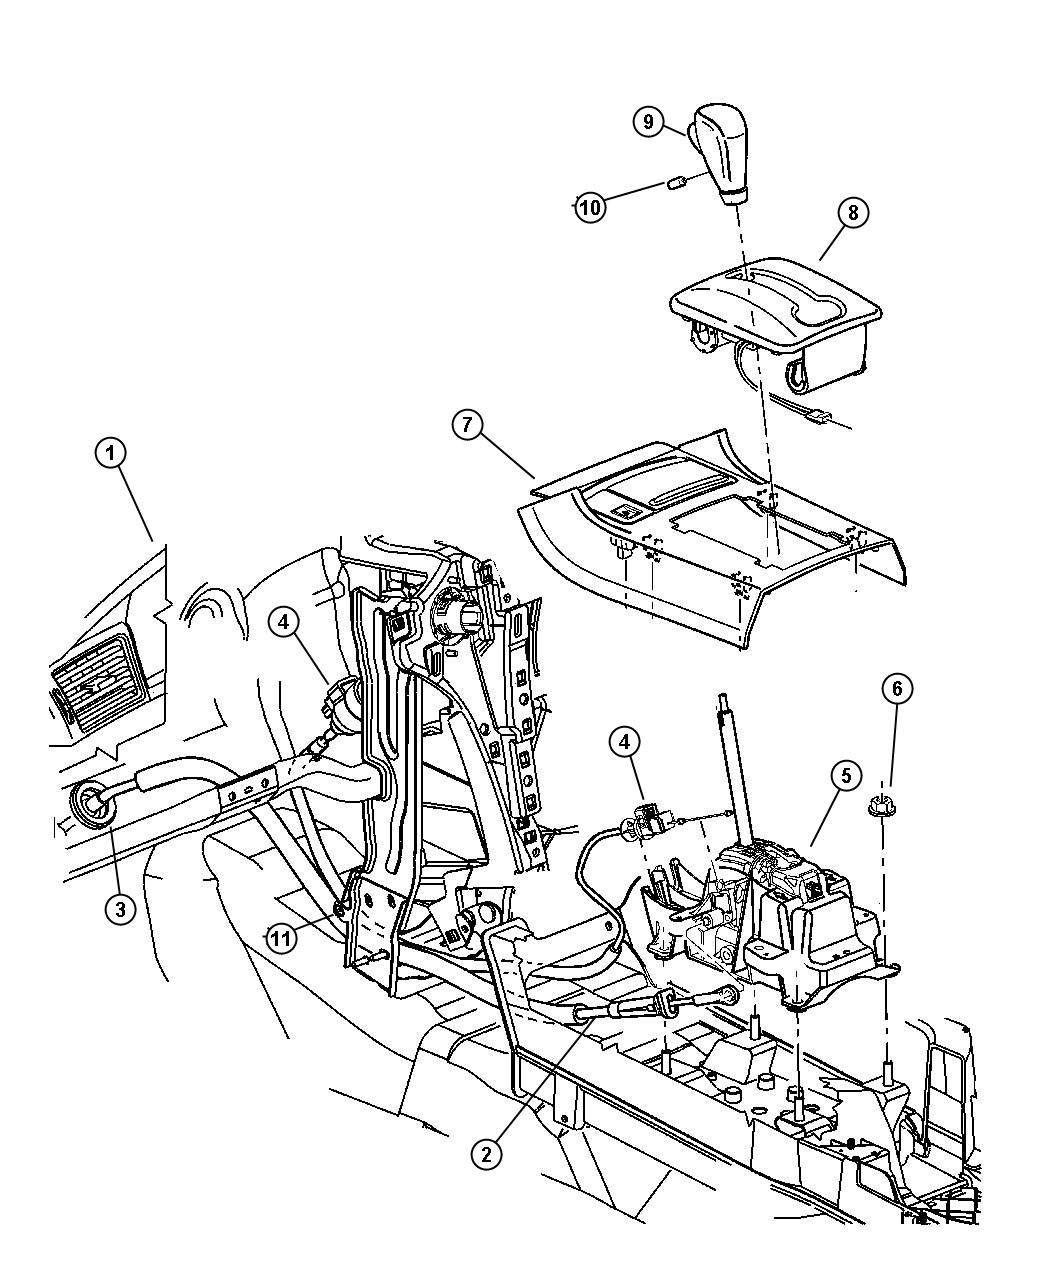 Service manual [Changeing Gear Shift Assembly 2002 Jeep